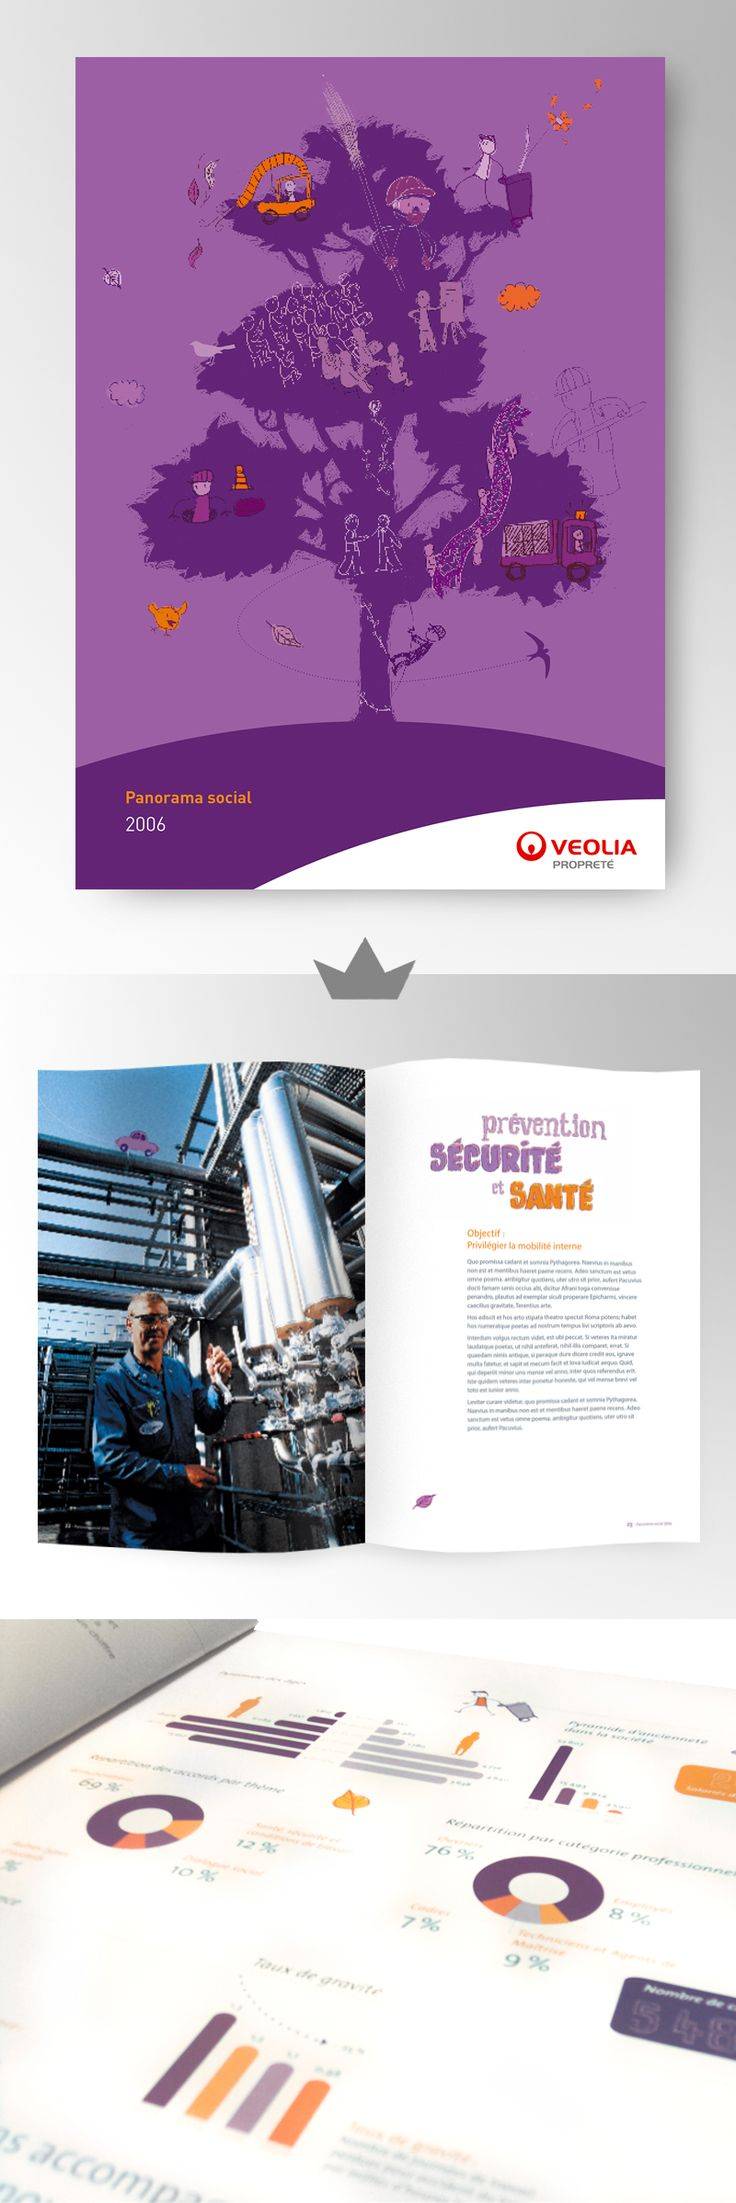 VEOLIA - Rapport annuel 2006  (Panorama social)